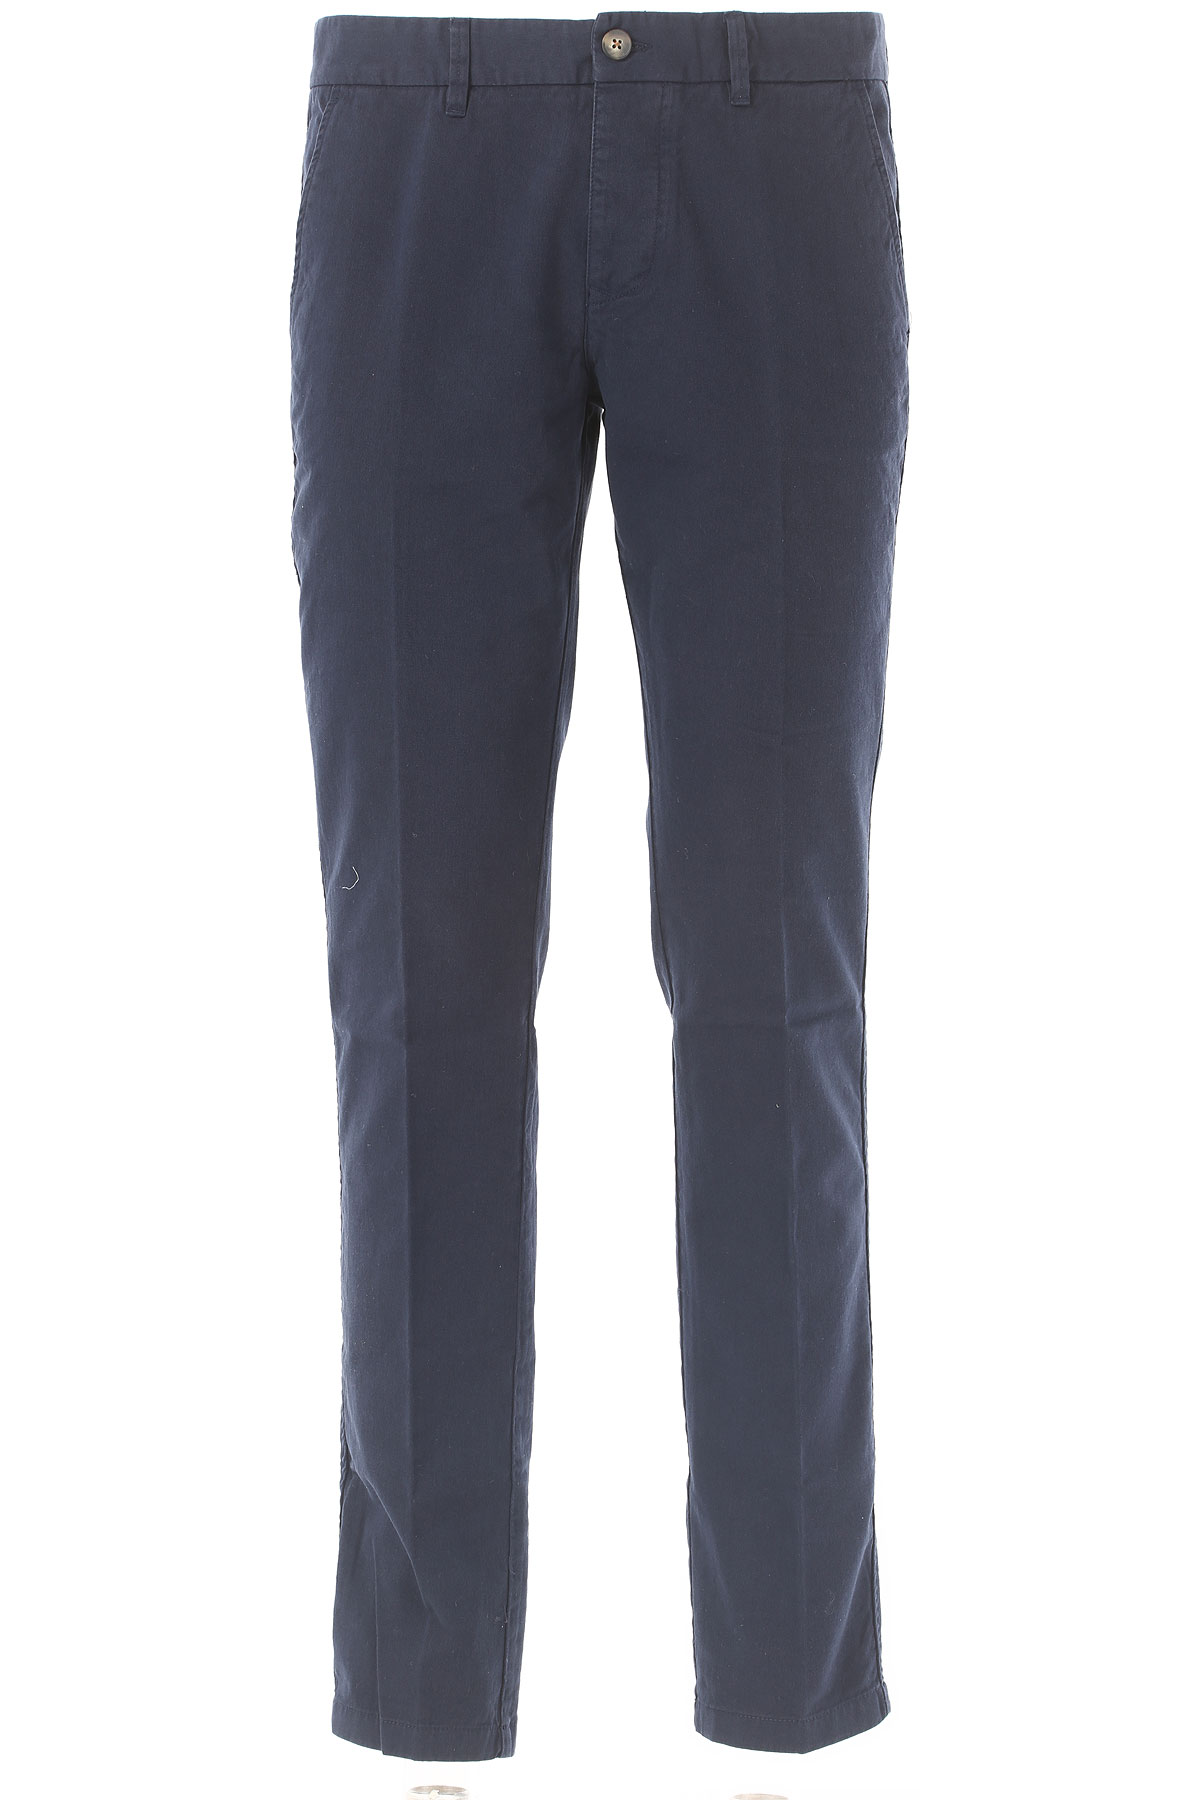 Image of Blauer Pants for Men On Sale in Outlet, Blue, Cotton, 2017, 32 38